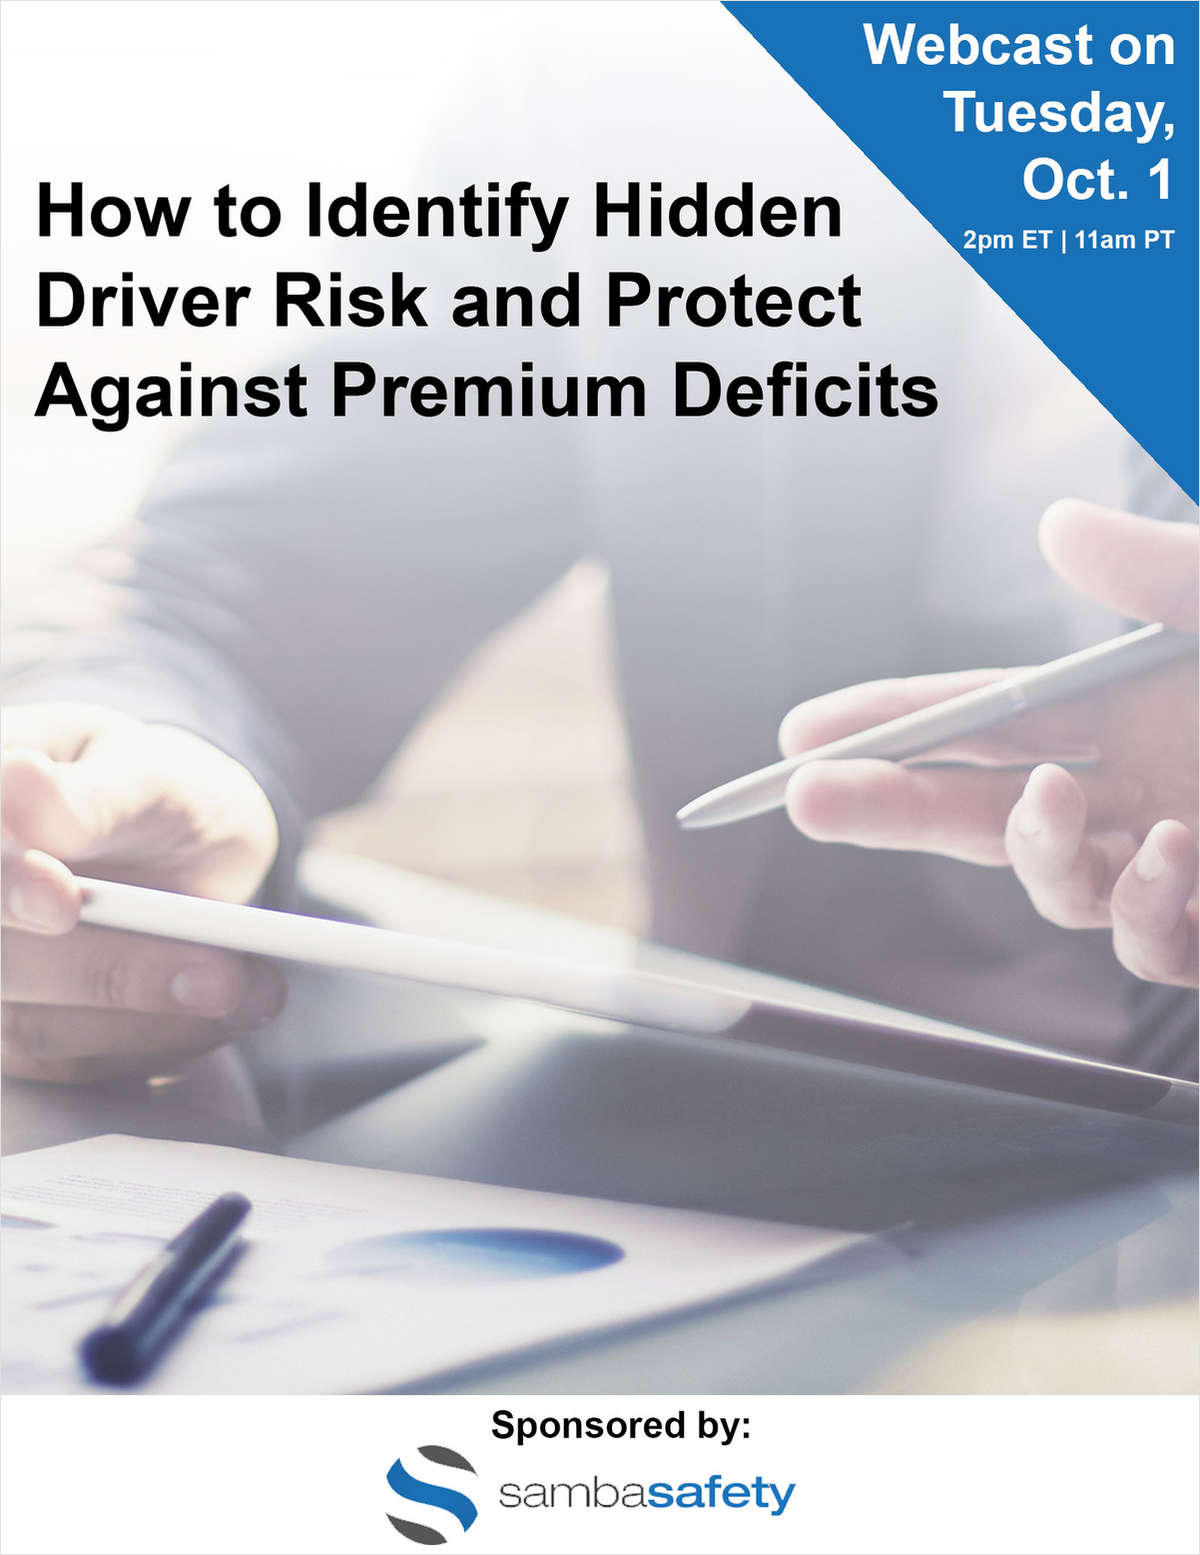 How to Identify Hidden Driver Risk and Protect Against Premium Deficits